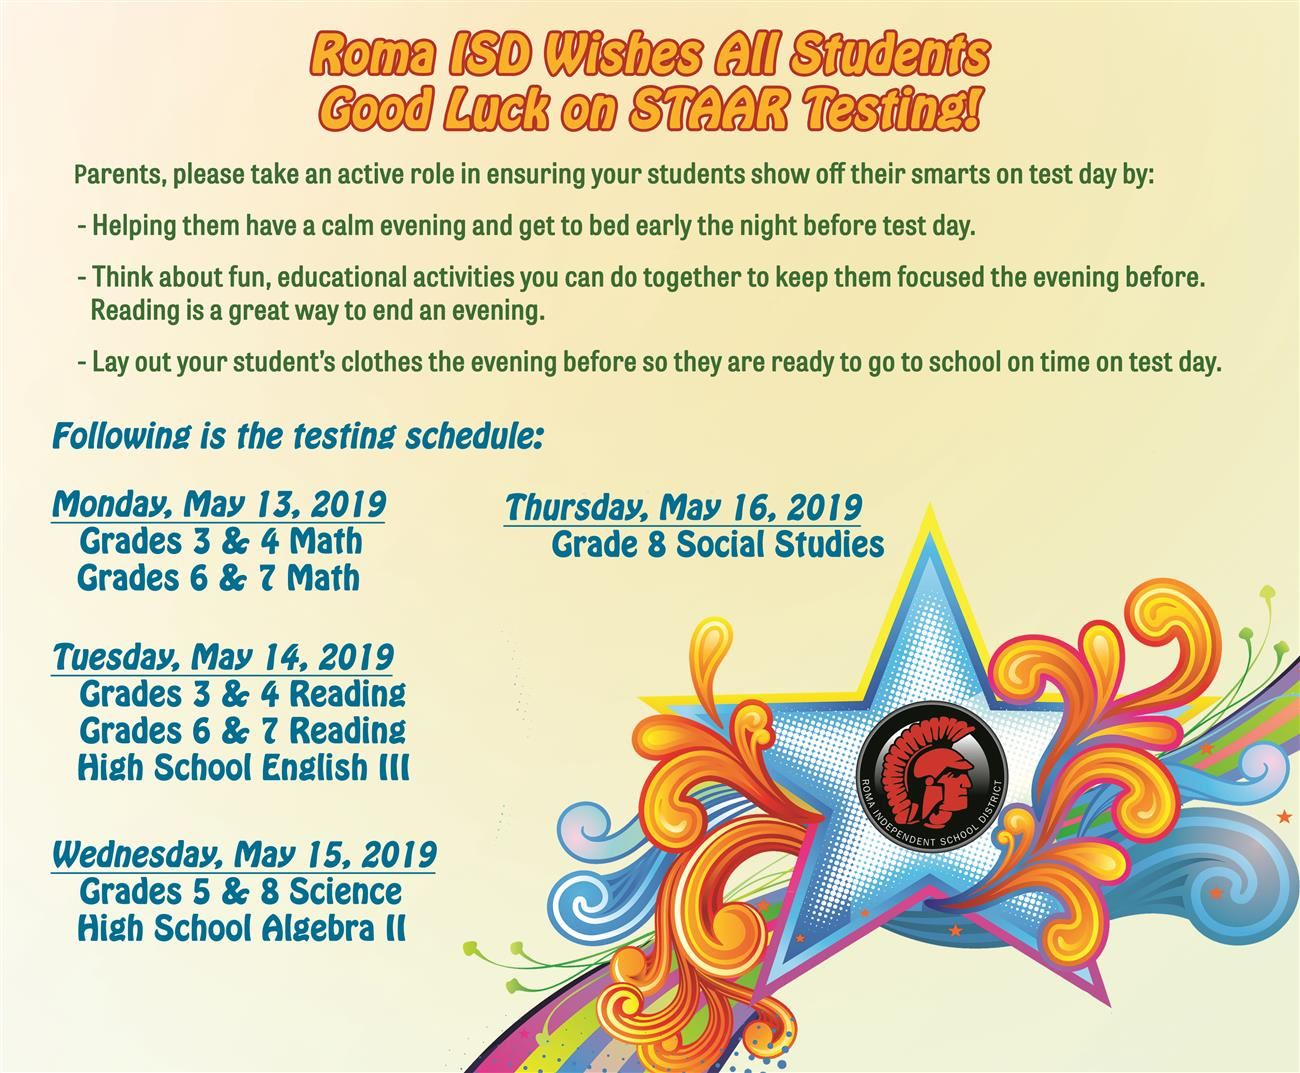 Parents, please take note of the STAAR tests taking place next week. Please share and help your students be prepared.